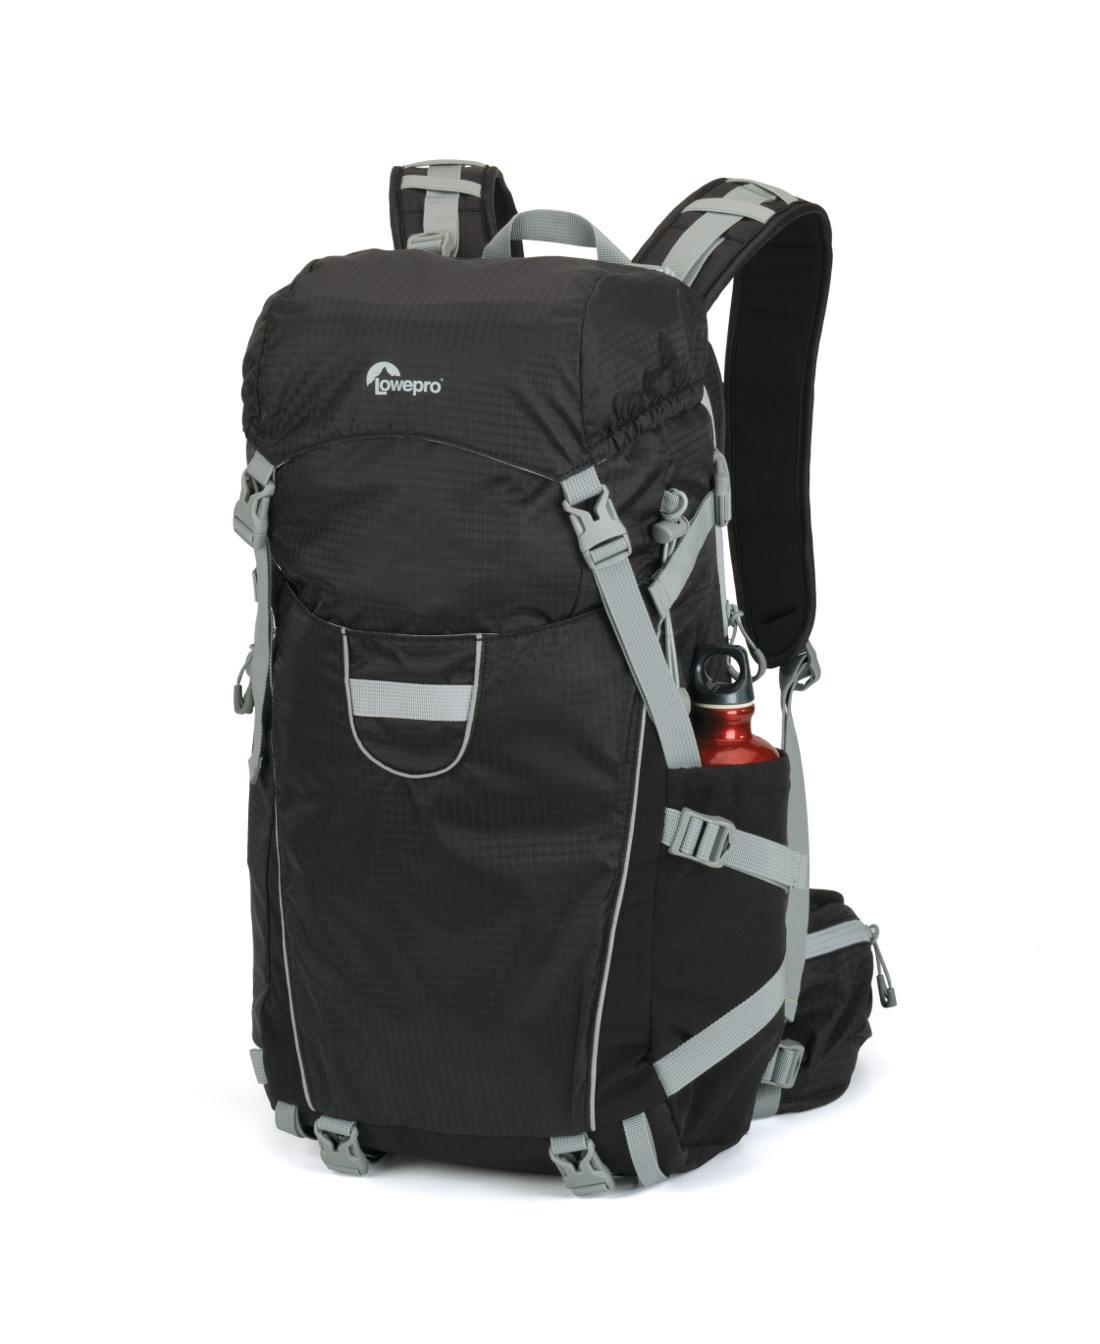 Lowepro-PhotoSport200AW Bottle rid